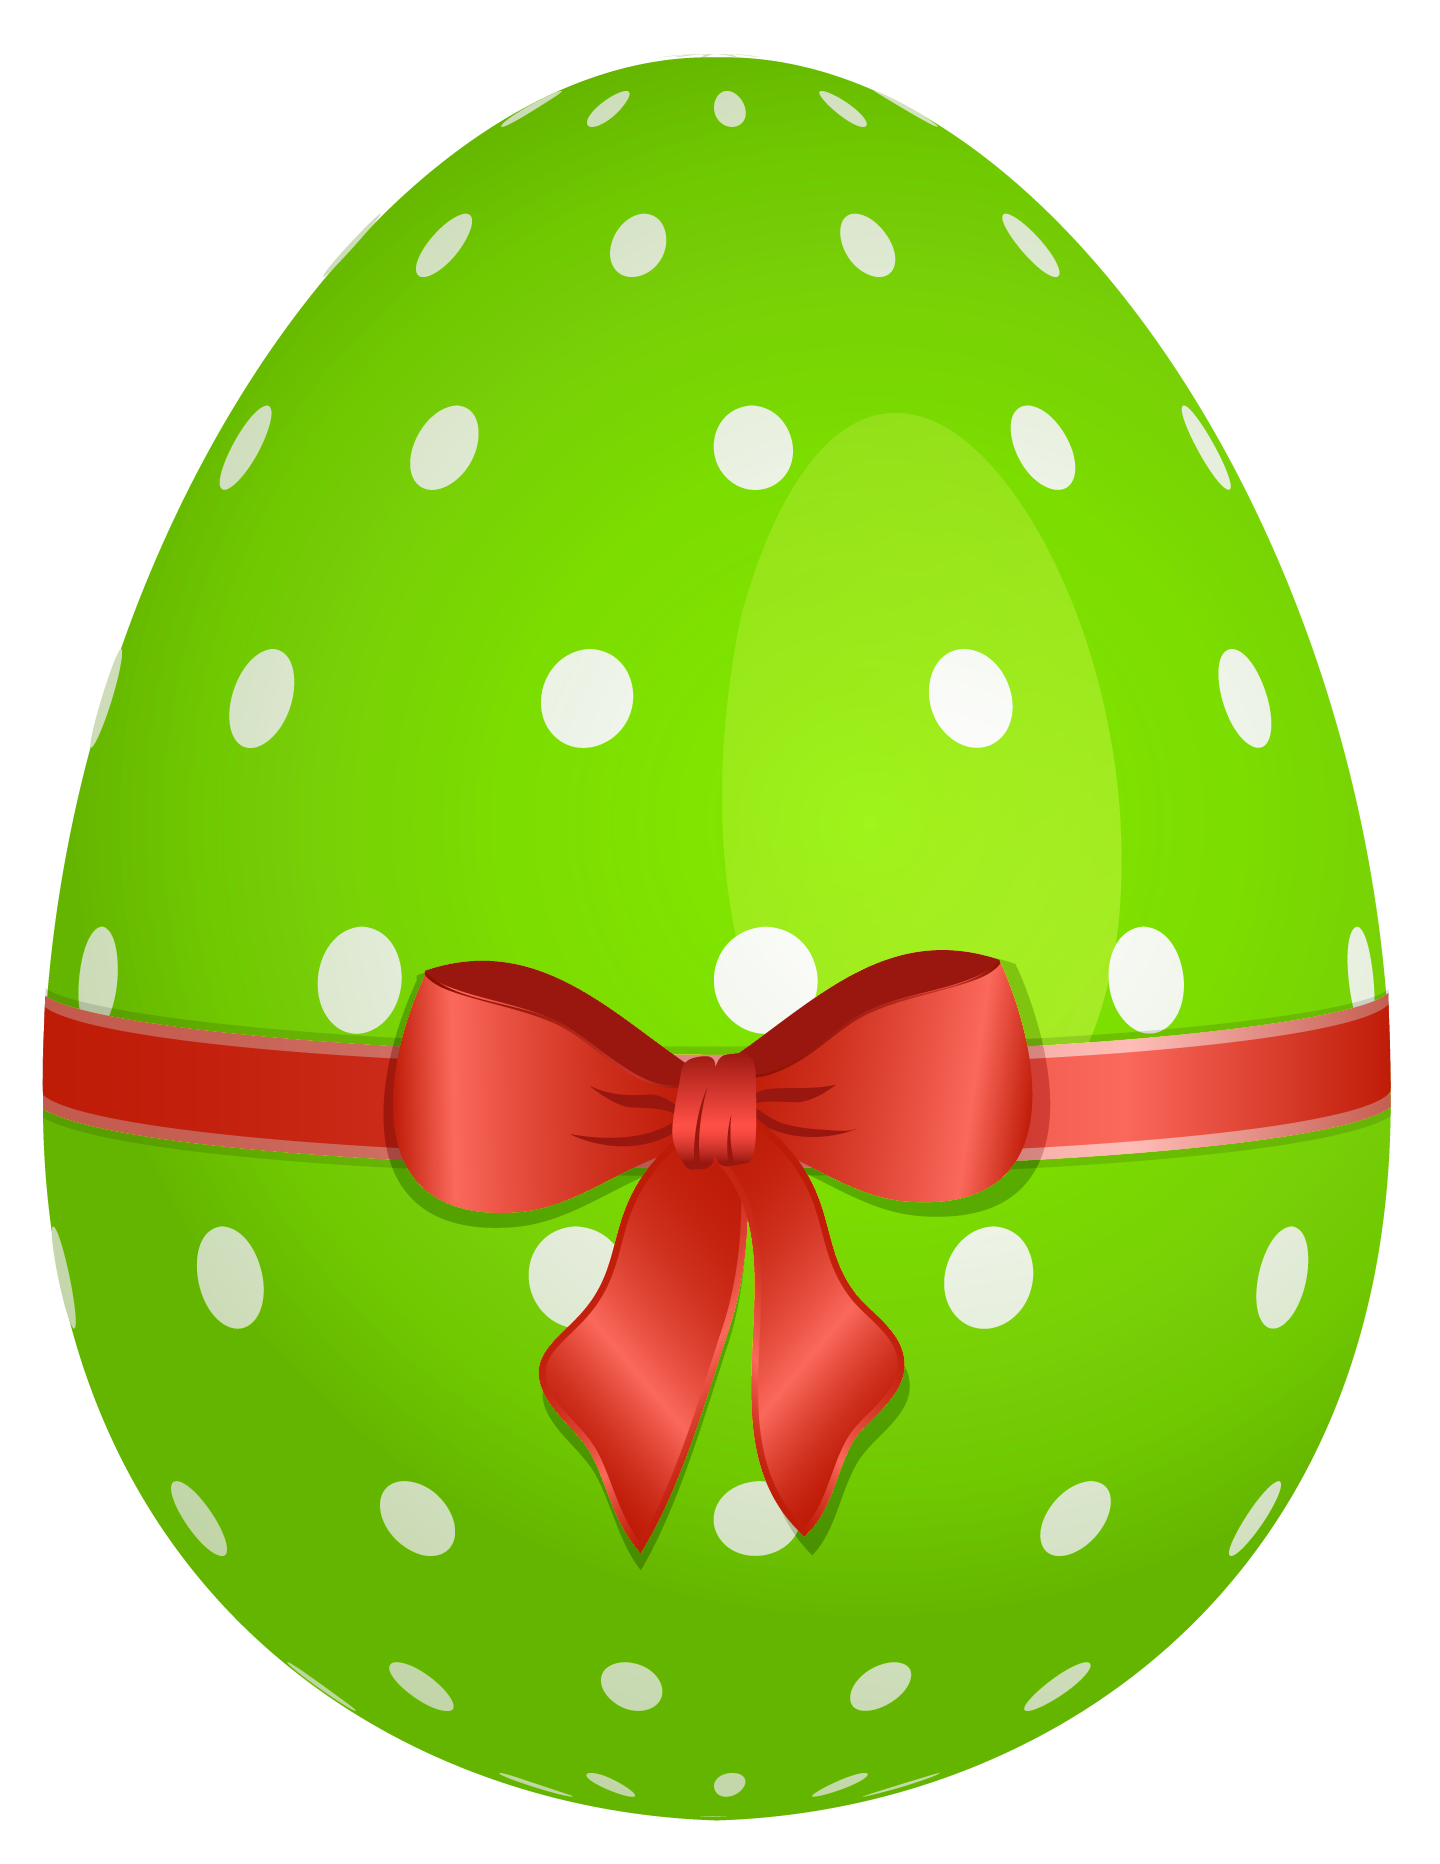 Bows clipart easter. Egg no background incep